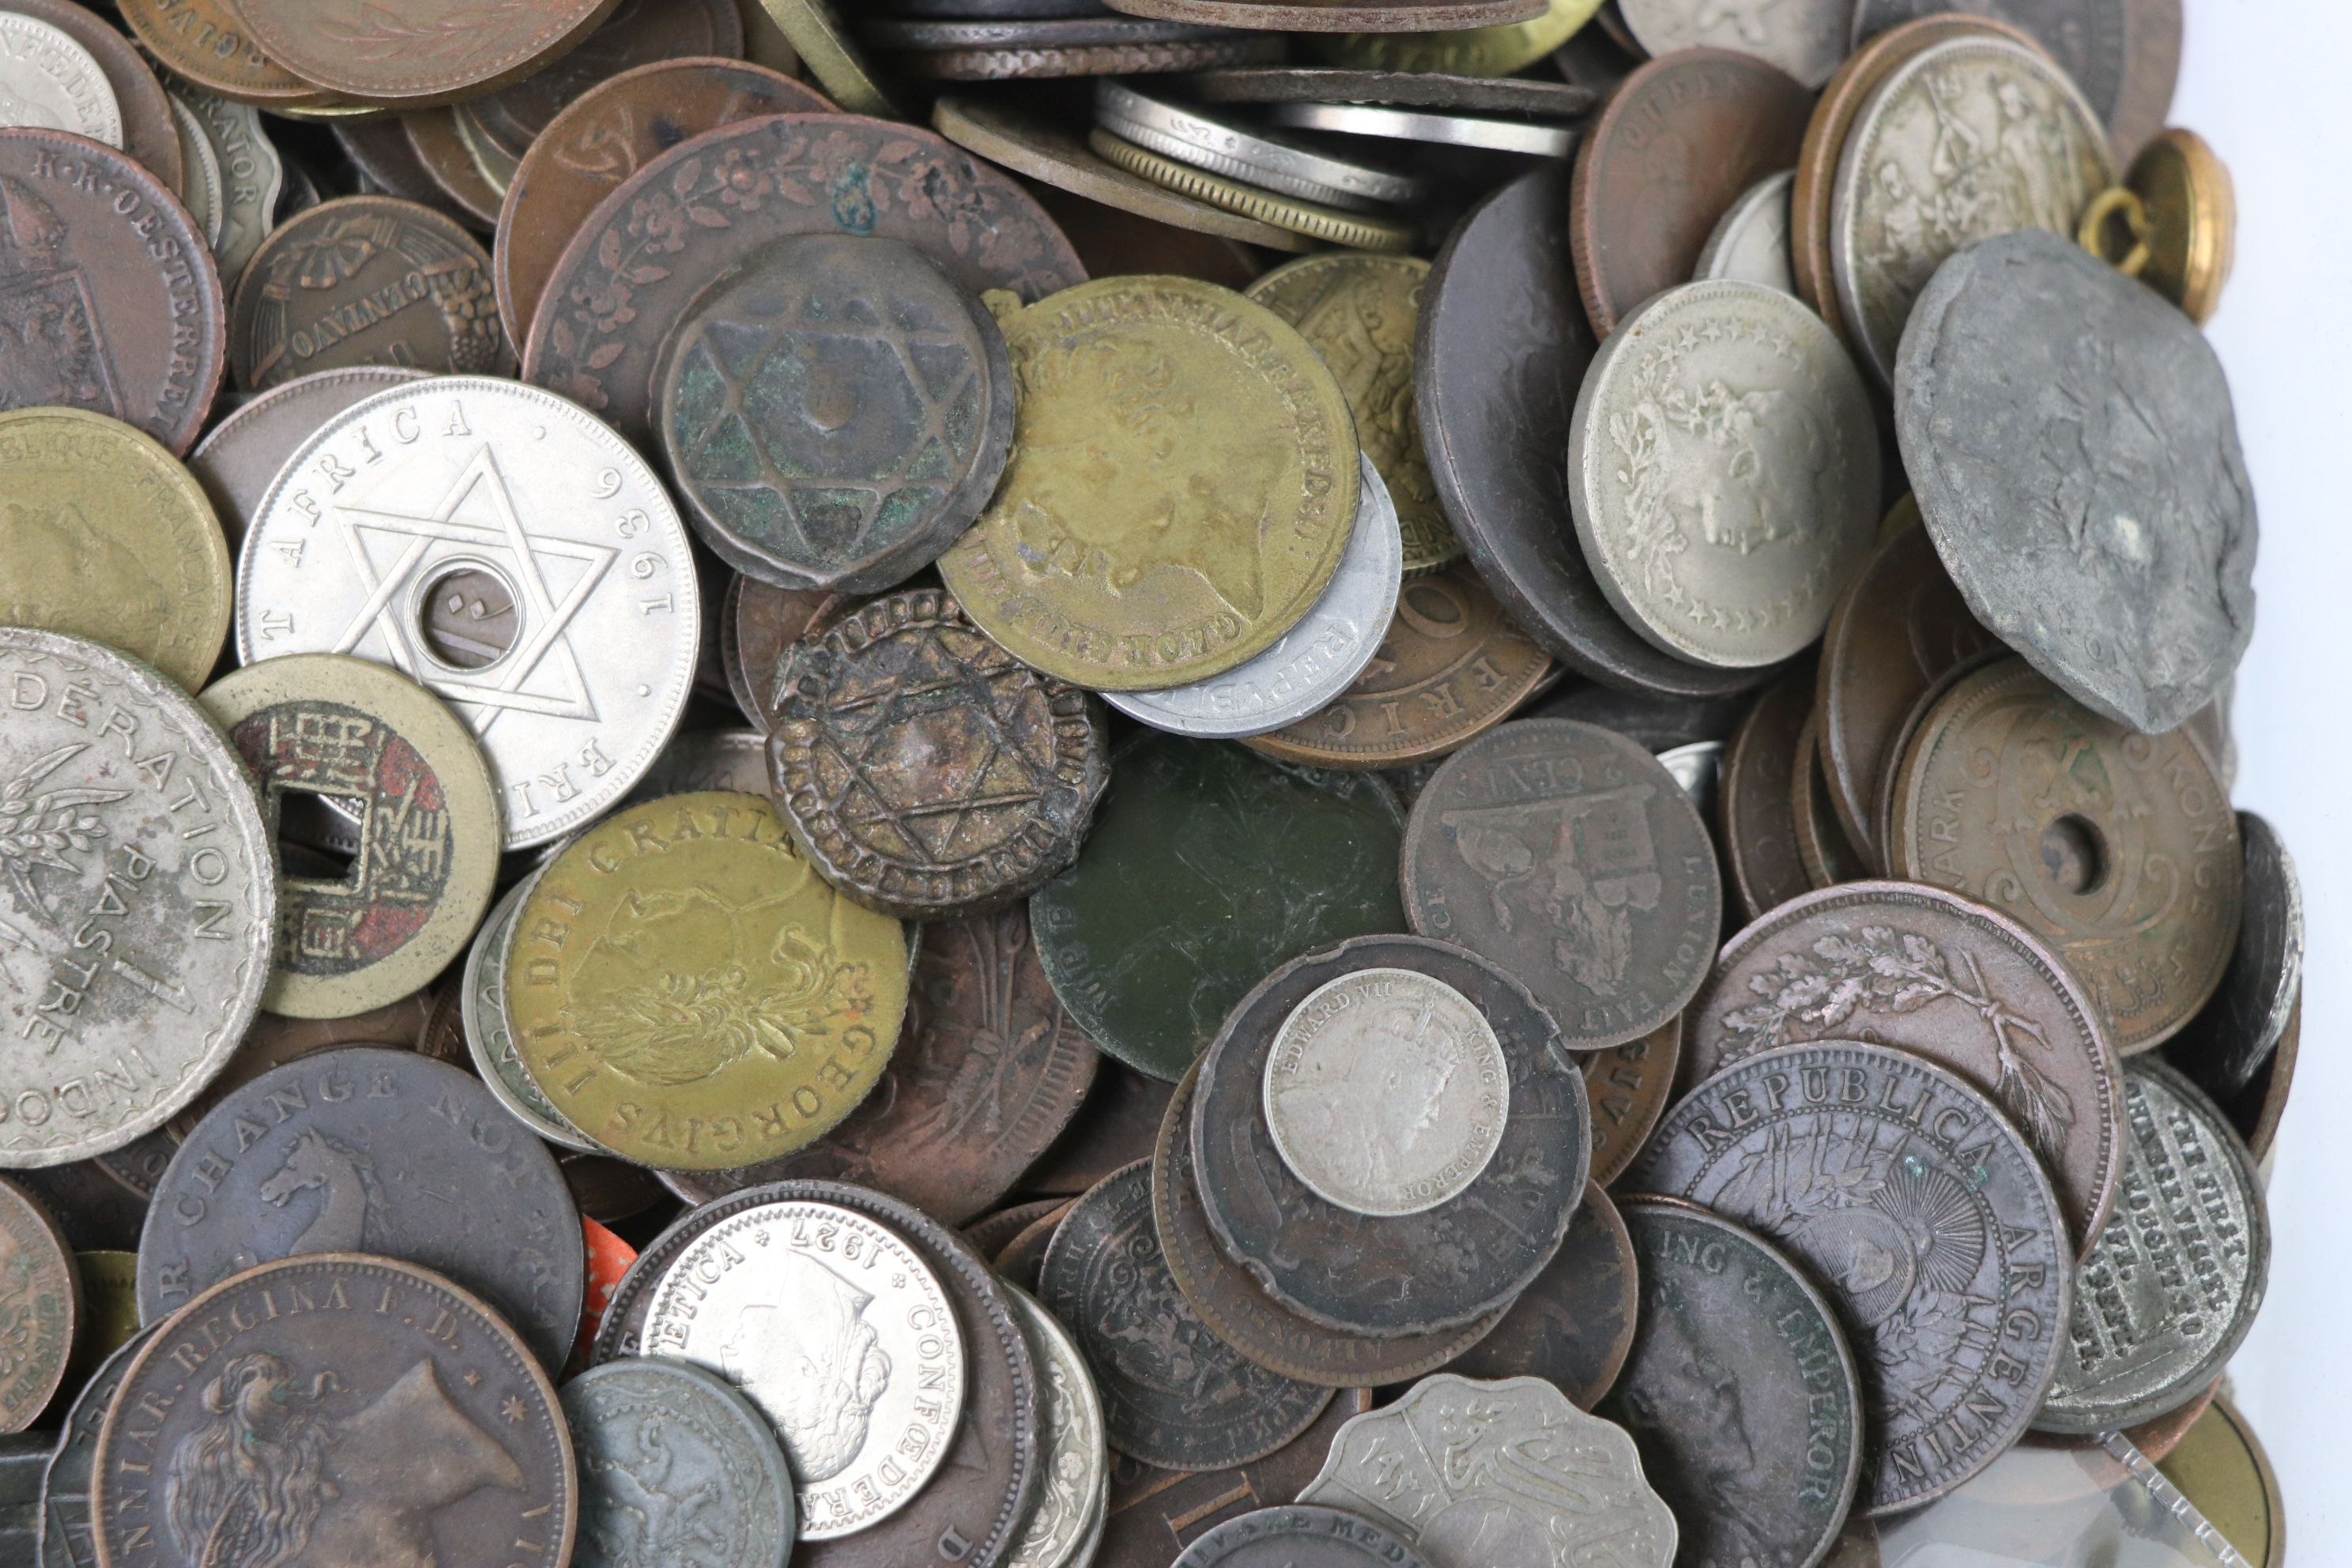 A large collection of British and World coins to include silver examples. - Image 9 of 10